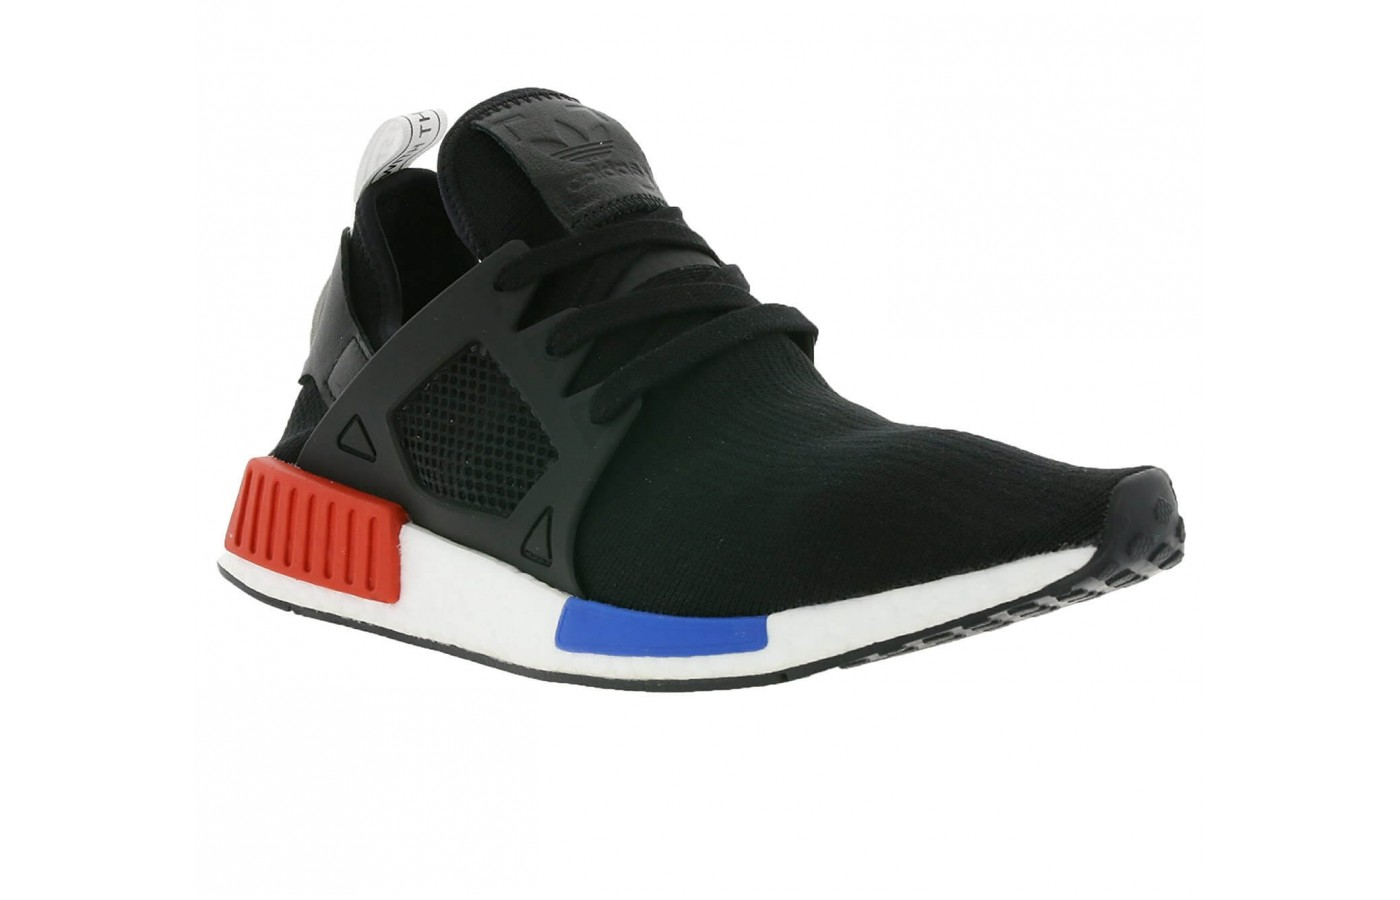 bd41a832fff26 Adidas NMD XR1ed for Performance and Quality - May 2019